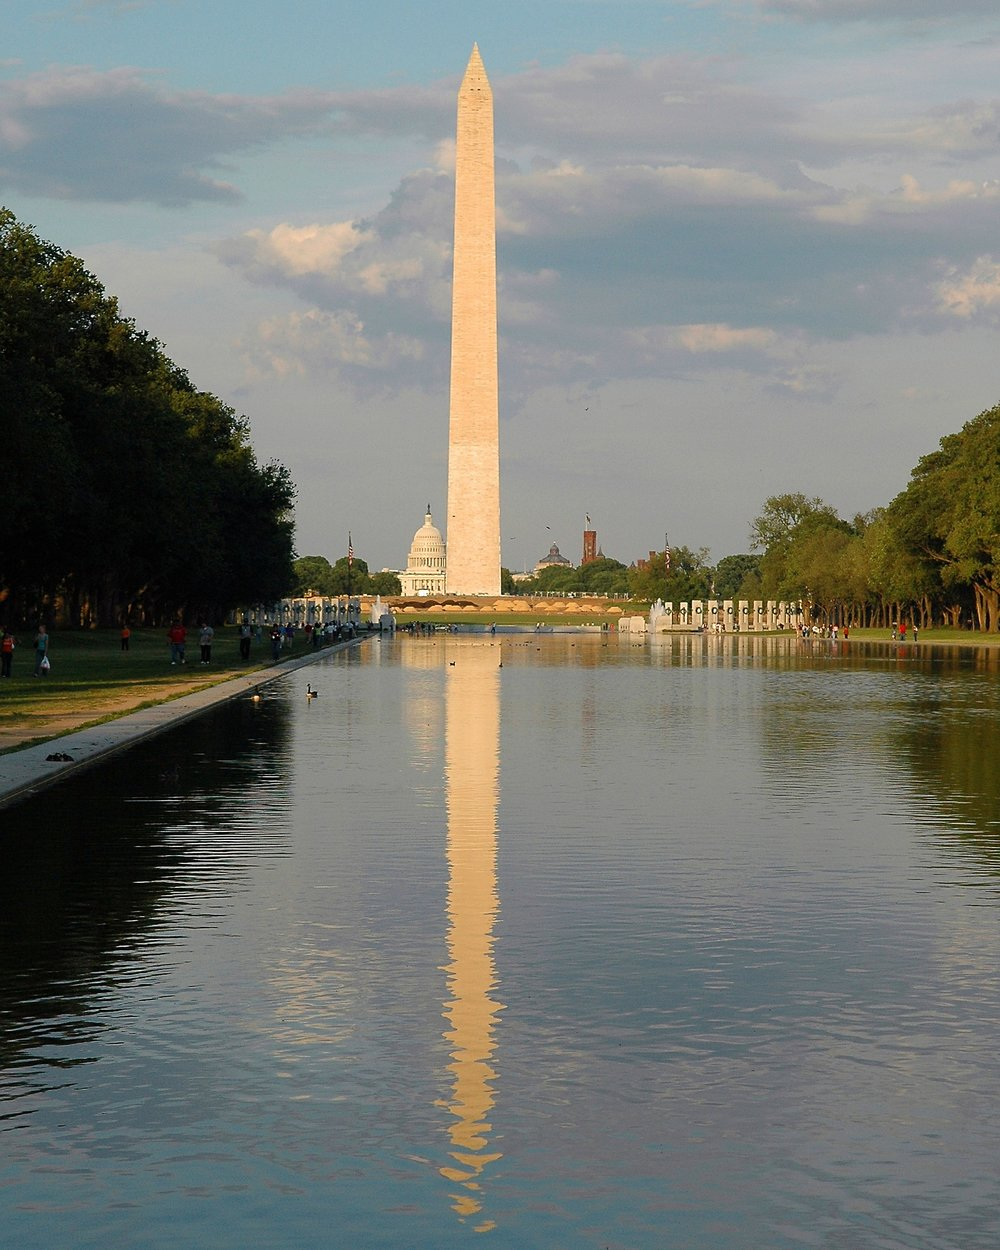 washington-monument-356128_1920.jpg